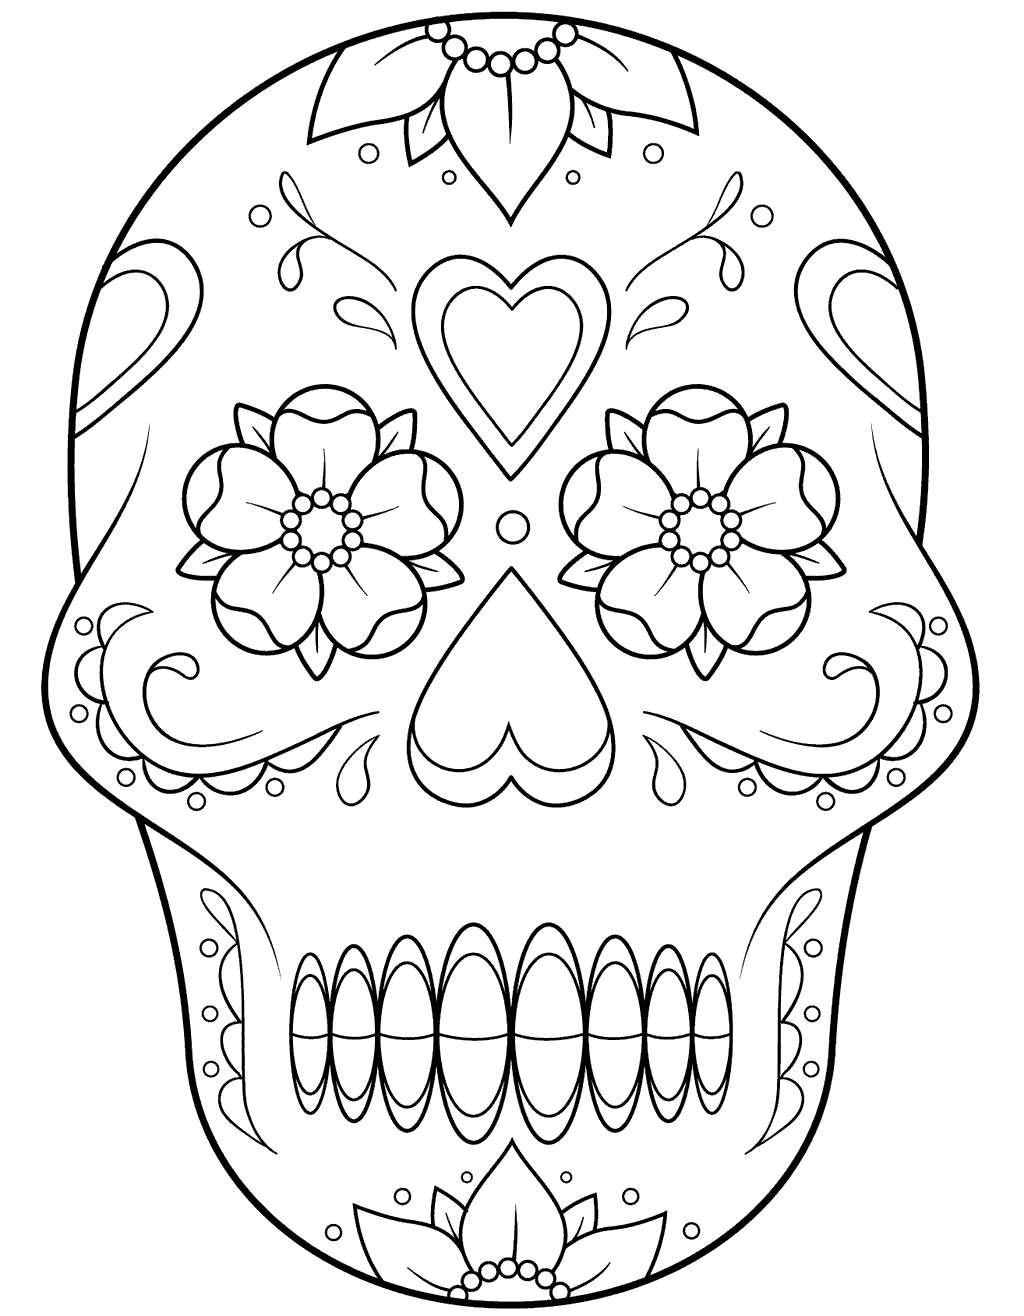 Free Calavera Coloring Pages Skeleton With Flowers And Hearts printable